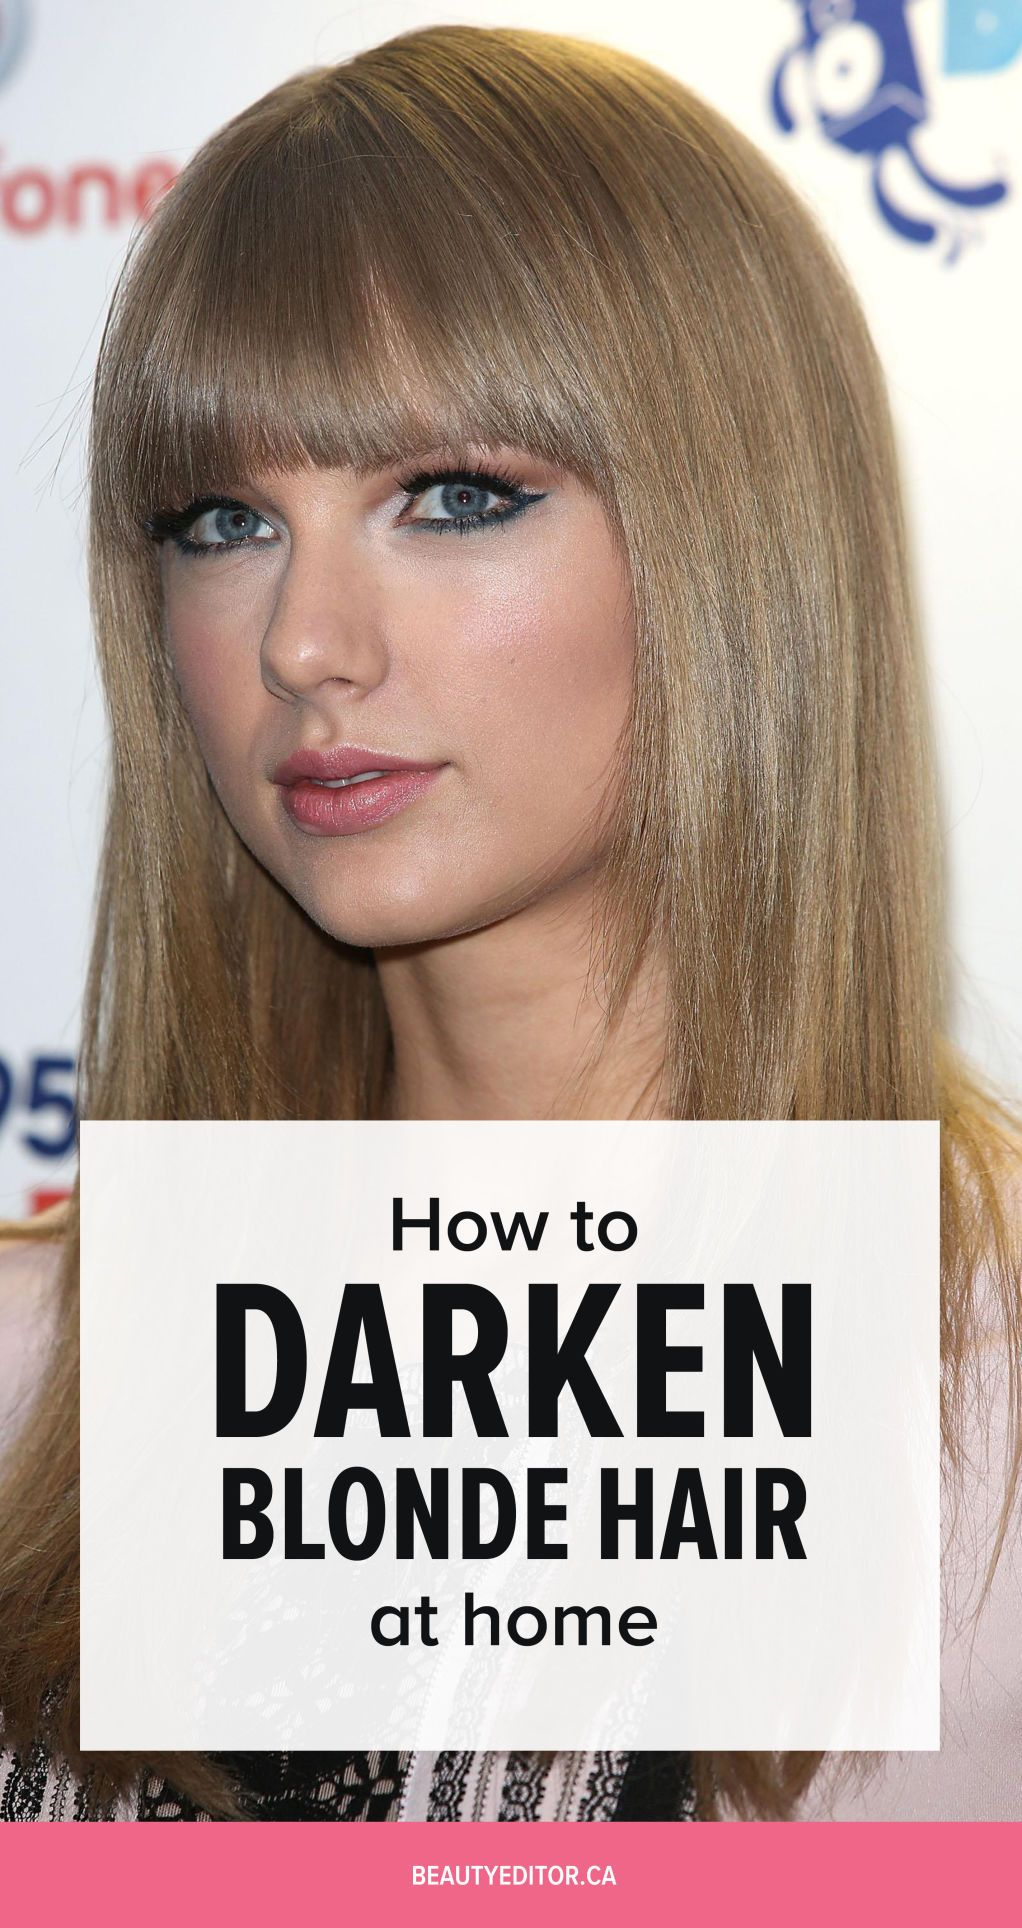 Ask a hairstylist how to darken your blonde hair at home